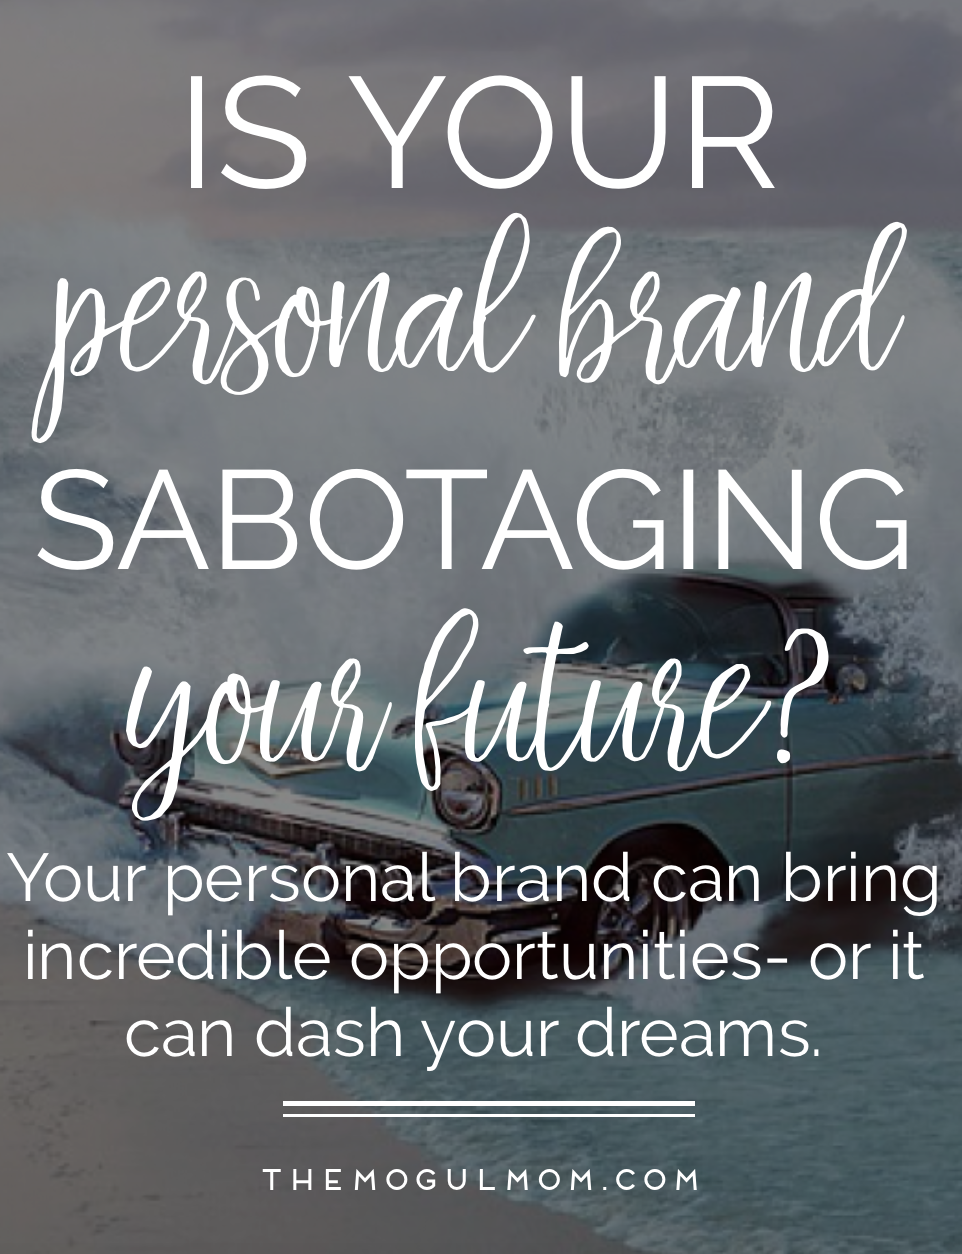 3 Ways Your Personal Brand Could Be Sabotaging Future Opportunities